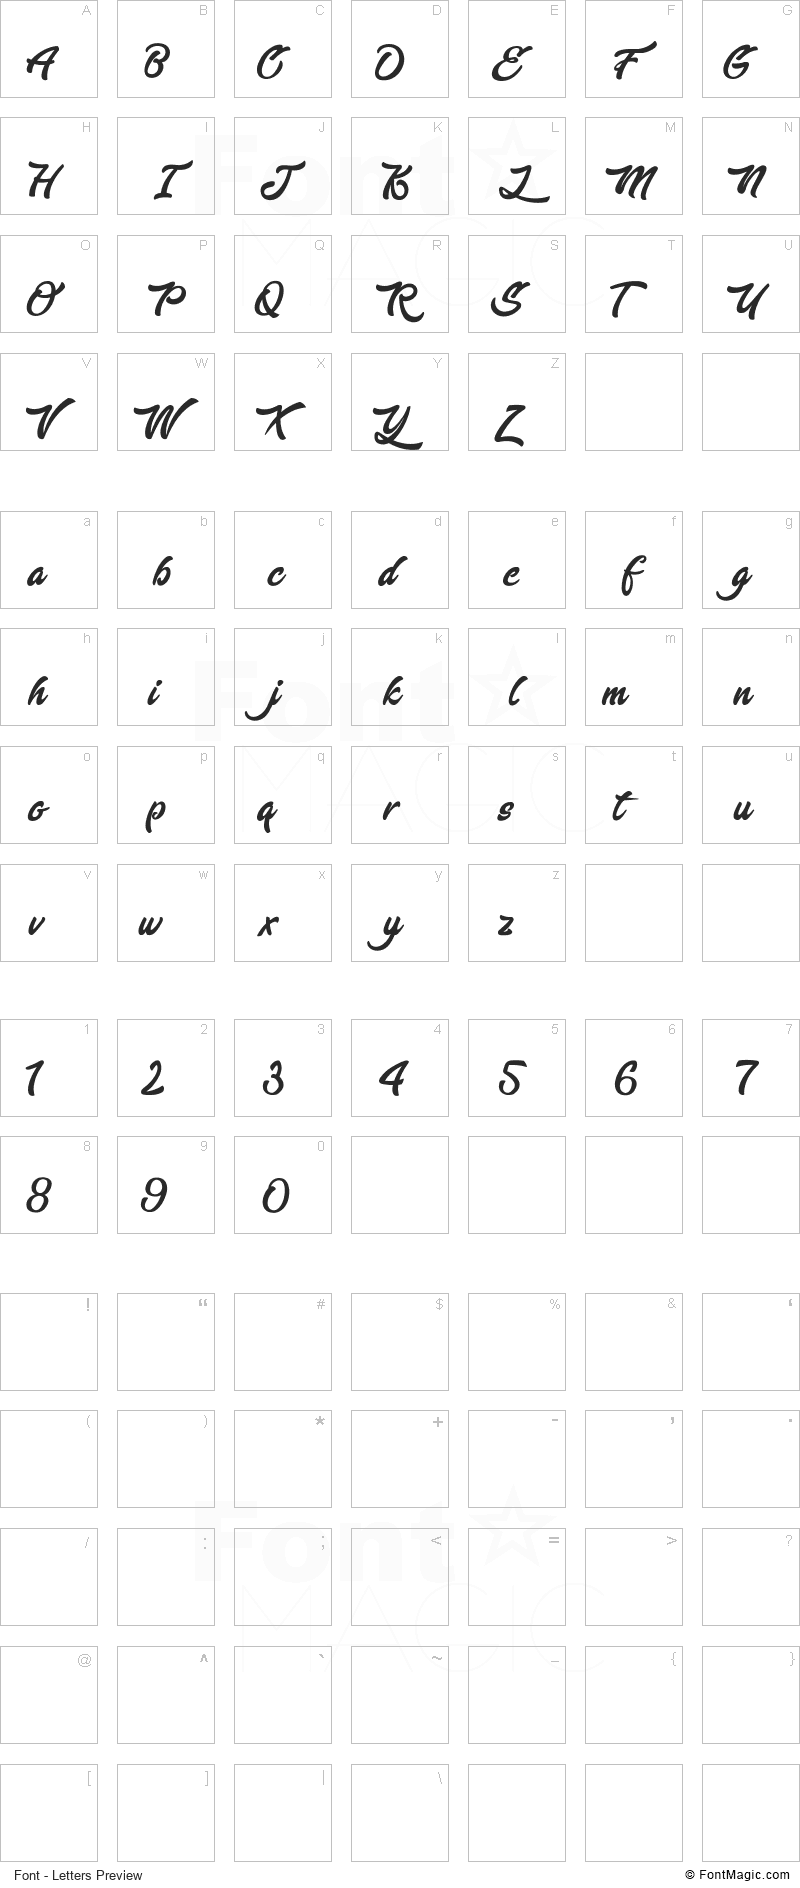 Enlighten your Destiny Font - All Latters Preview Chart